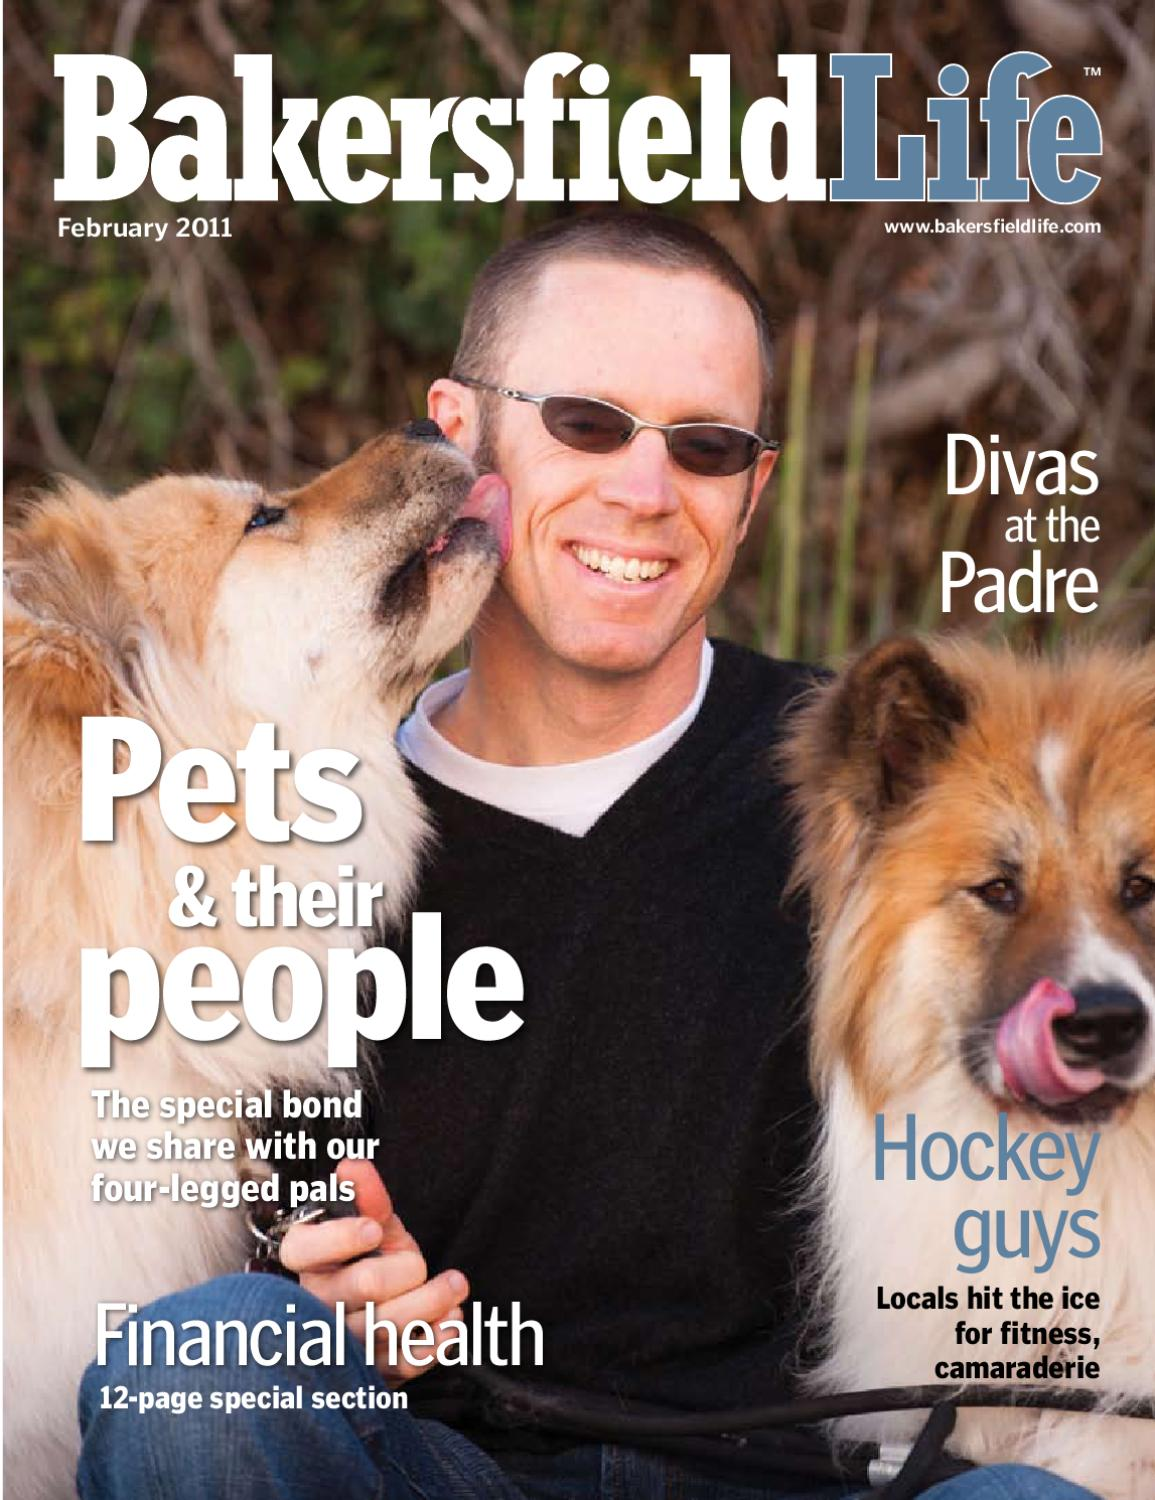 Bakersfield Life Magazine February 2011 By Tbc Media